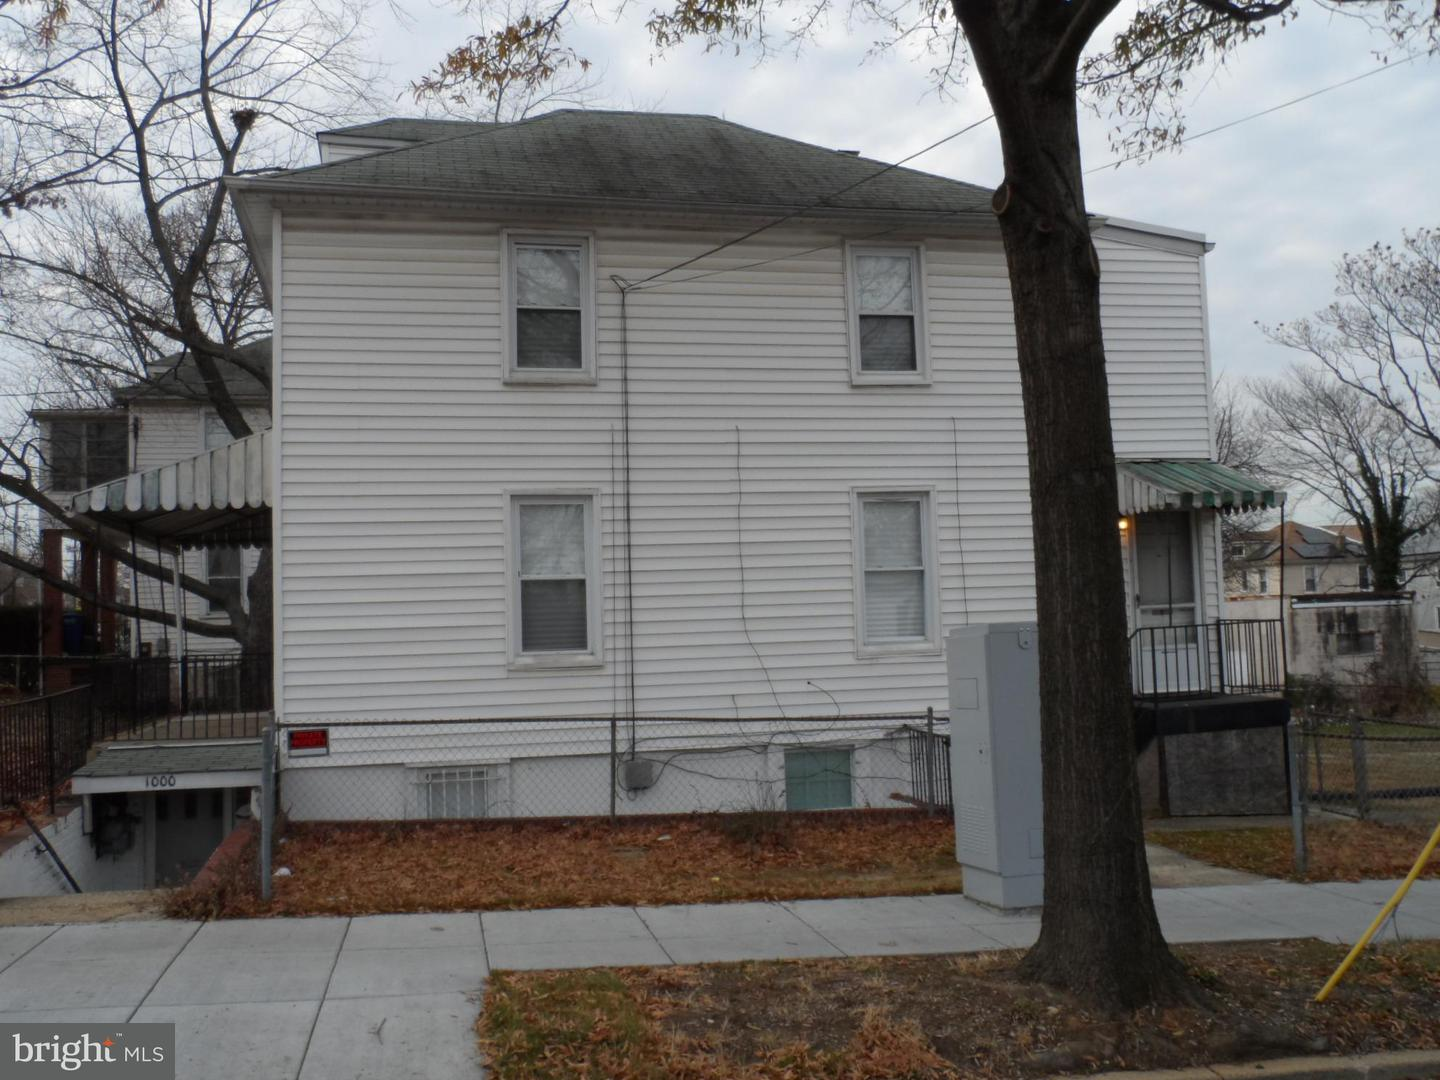 Other Residential for Rent at 1000 49th St NE Washington, District Of Columbia 20019 United States